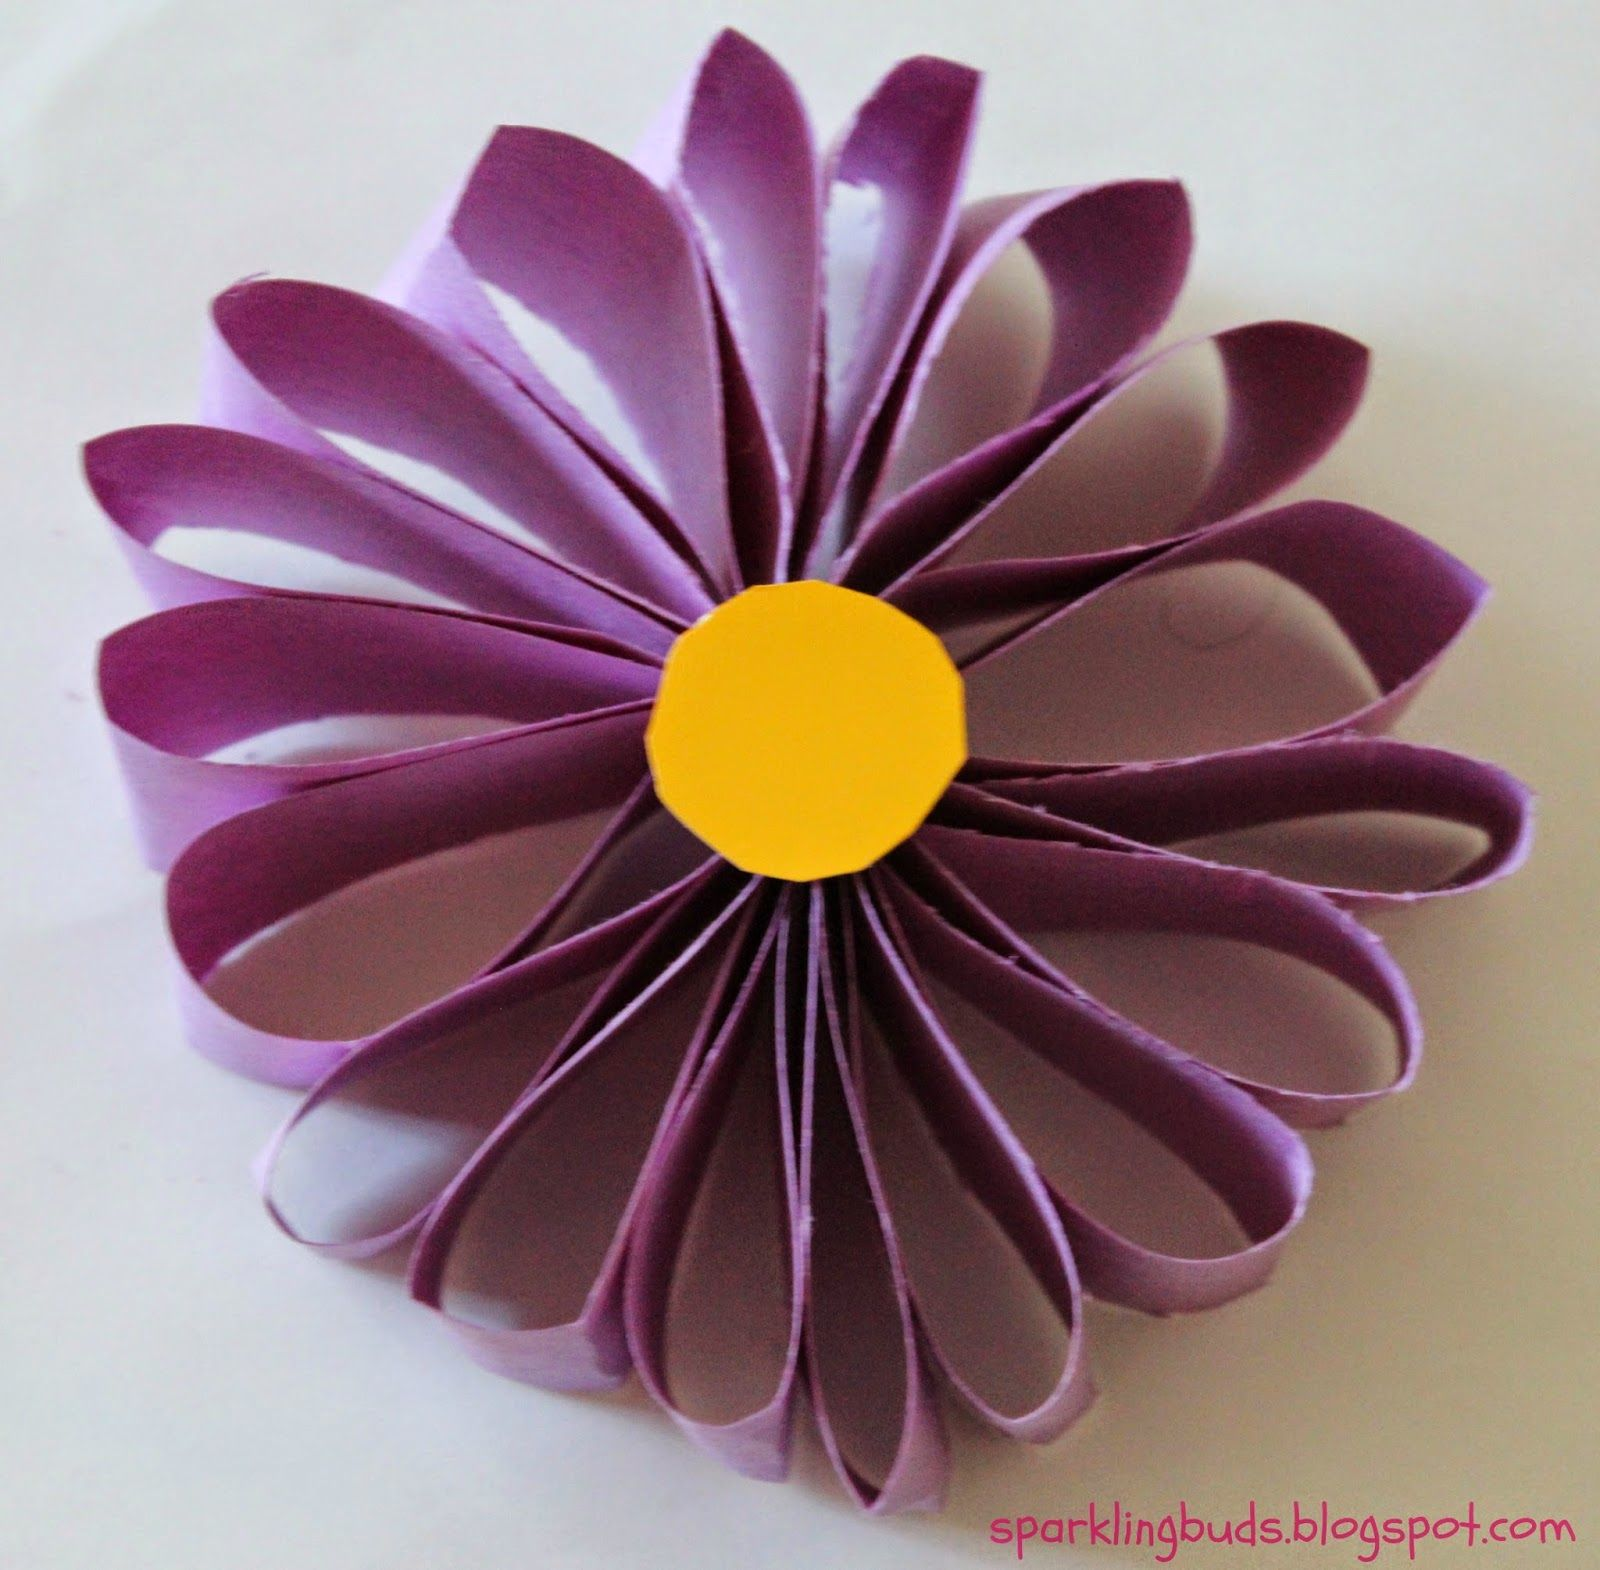 Easy flowers to make with paper 4k pictures 4k pictures full hq making flower from paper goal goodwinmetals co how to make paper flowers for kids how to make rolled paper roses quick easy tutorial youtube how to make mightylinksfo